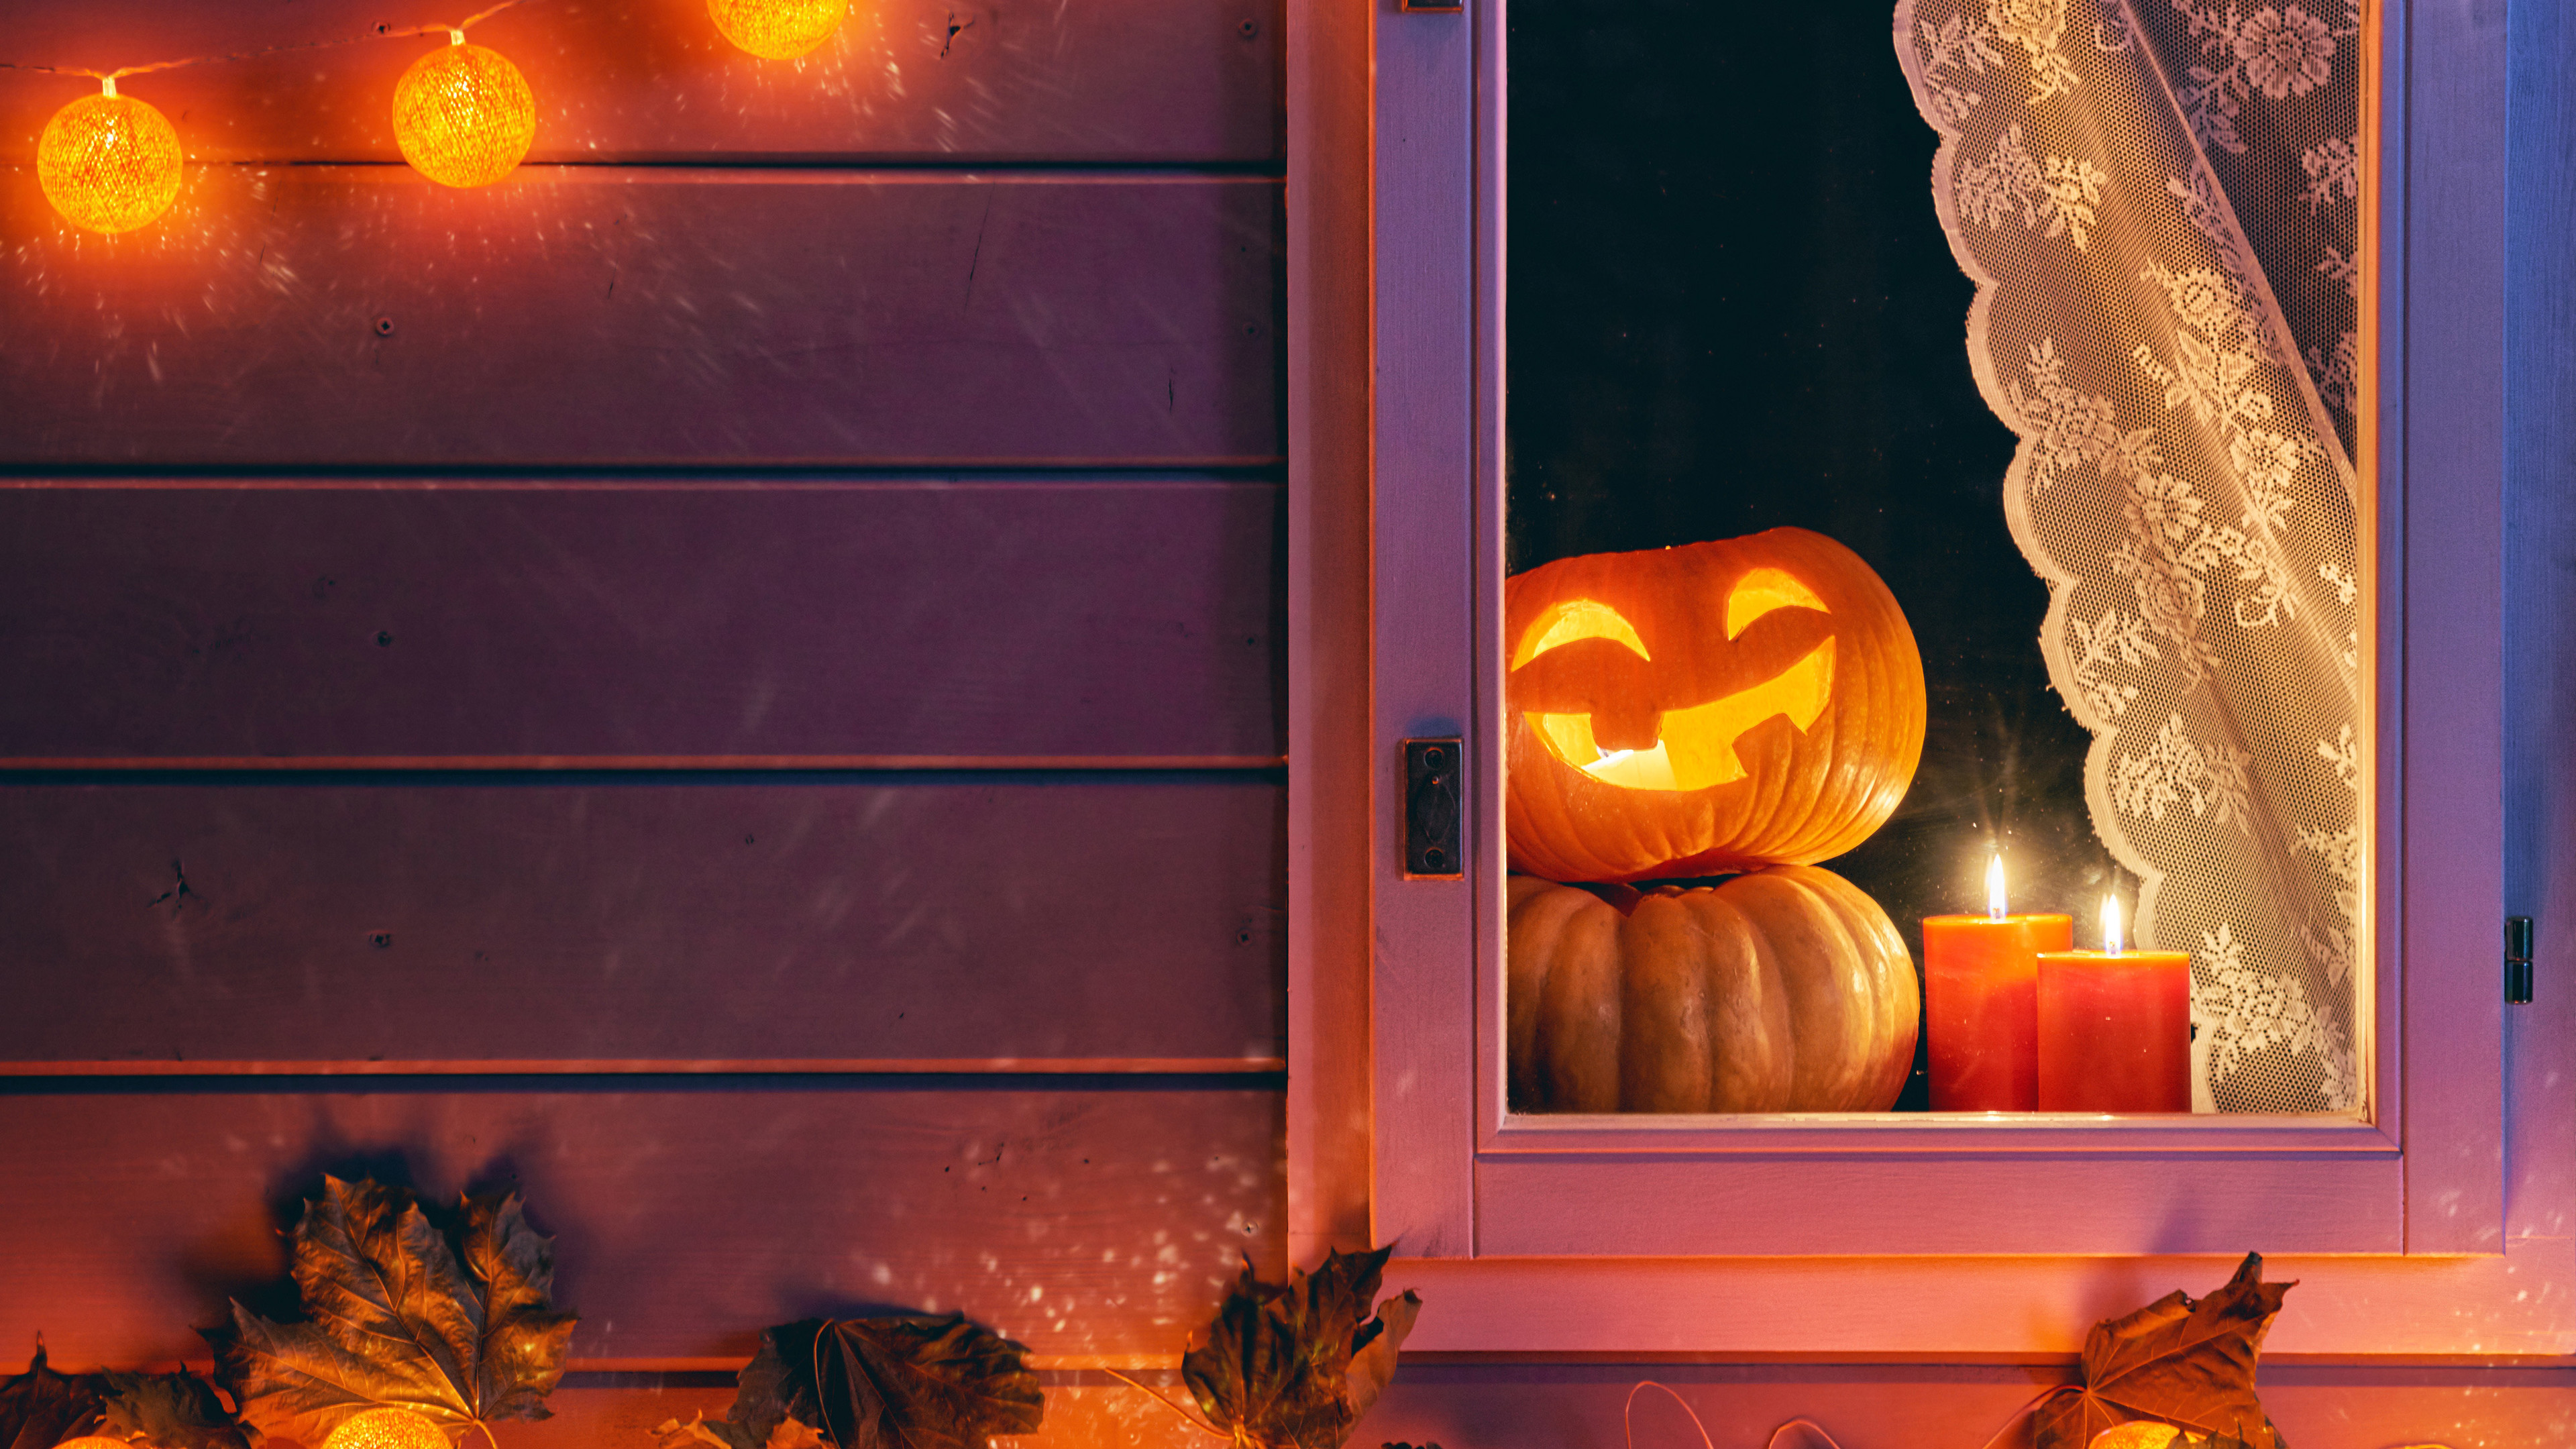 happy halloween 4k 1543946376 - Happy Halloween 4k - pumpkin wallpapers, holidays wallpapers, hd-wallpapers, halloween wallpapers, celebrations wallpapers